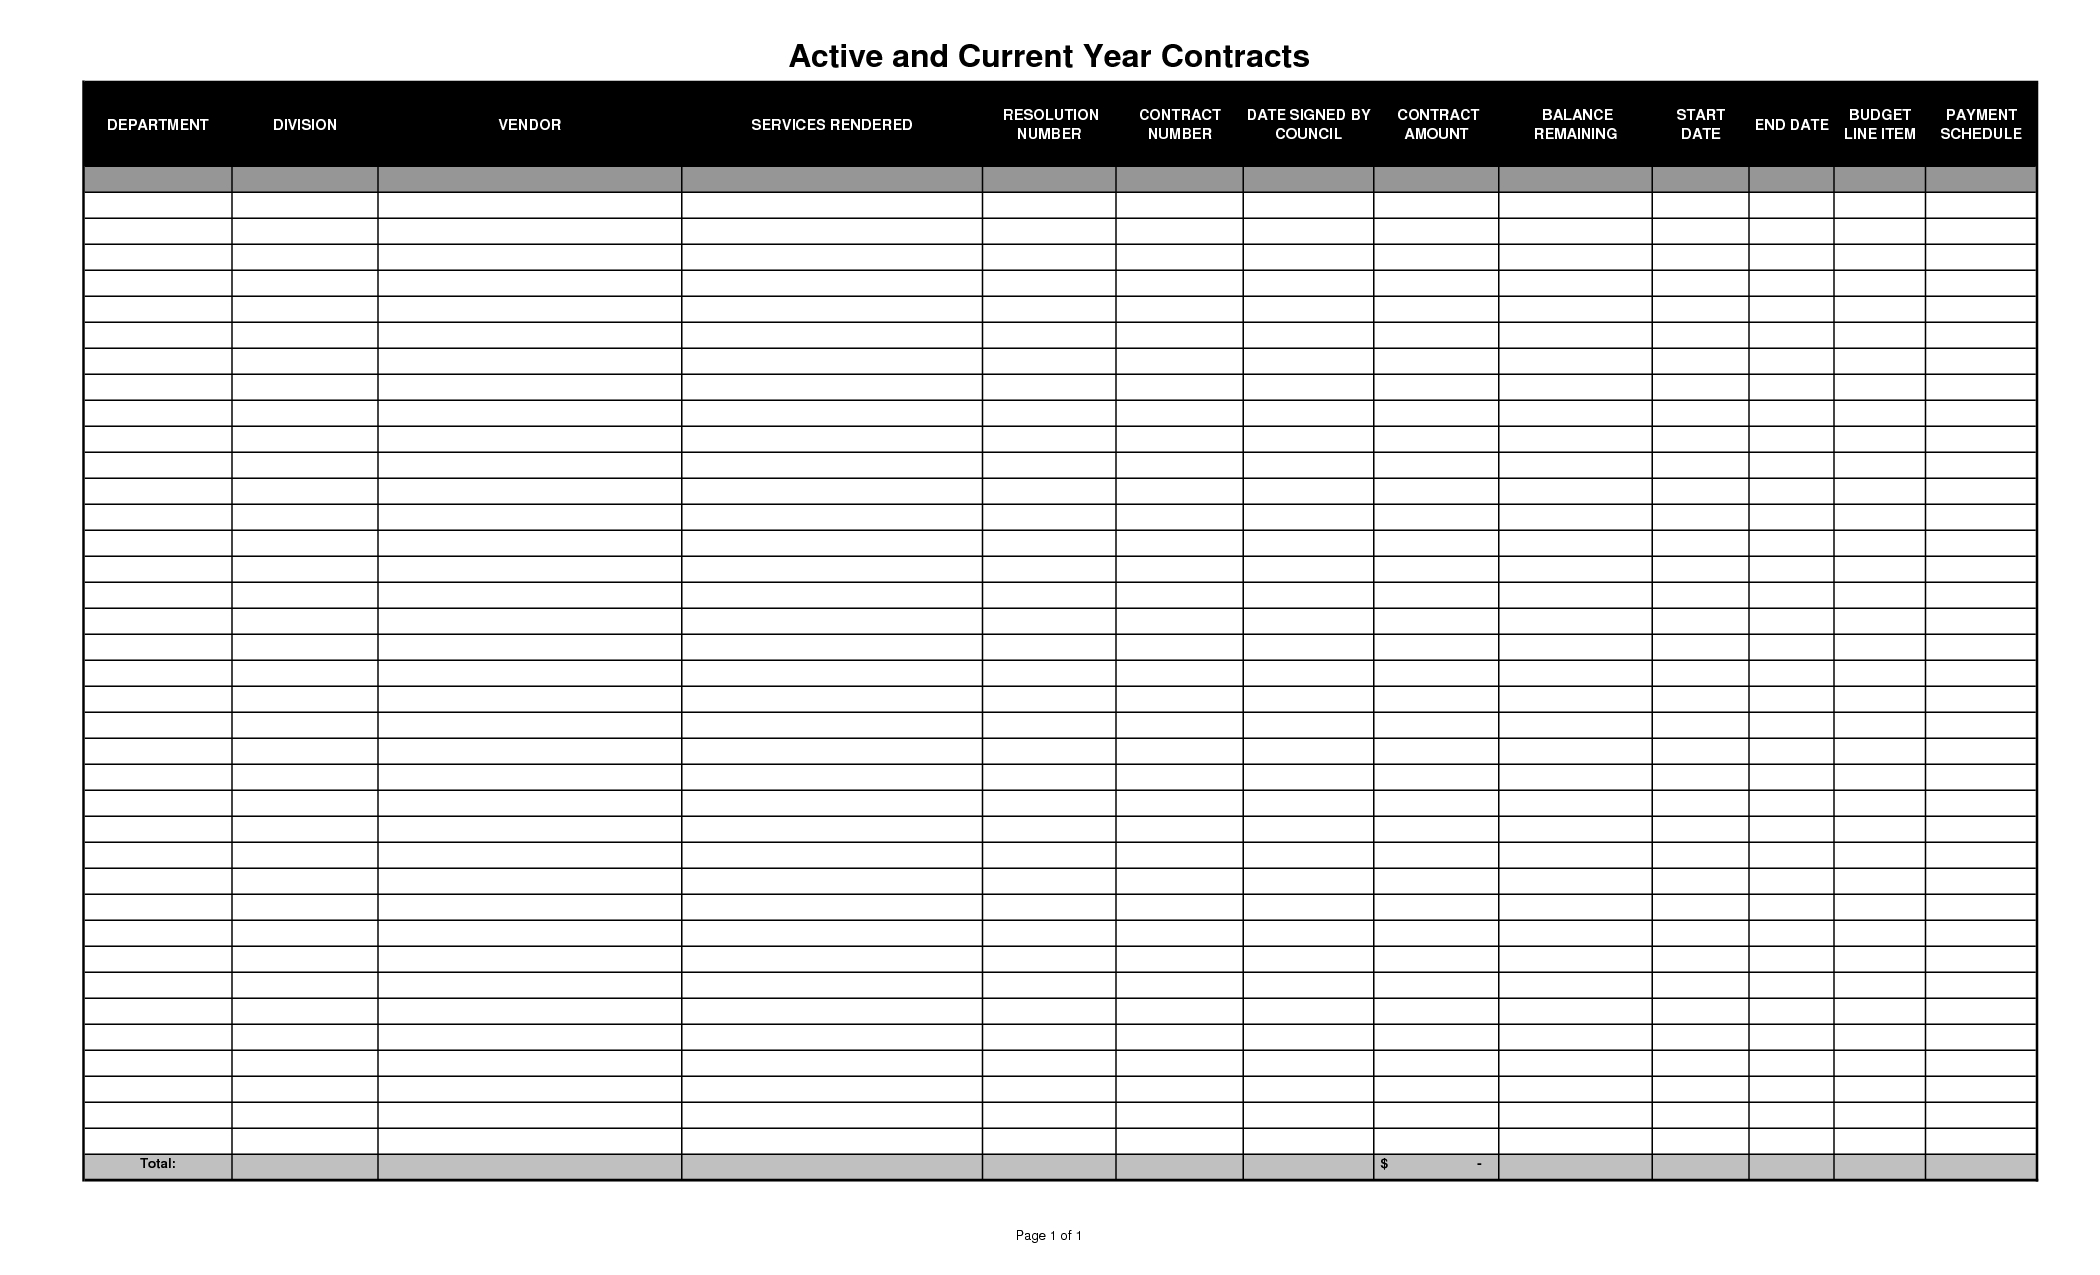 Blank Spreadsheet Template As Excel Spreadsheet Personal Finance To Personal Finance Spreadsheet Templates